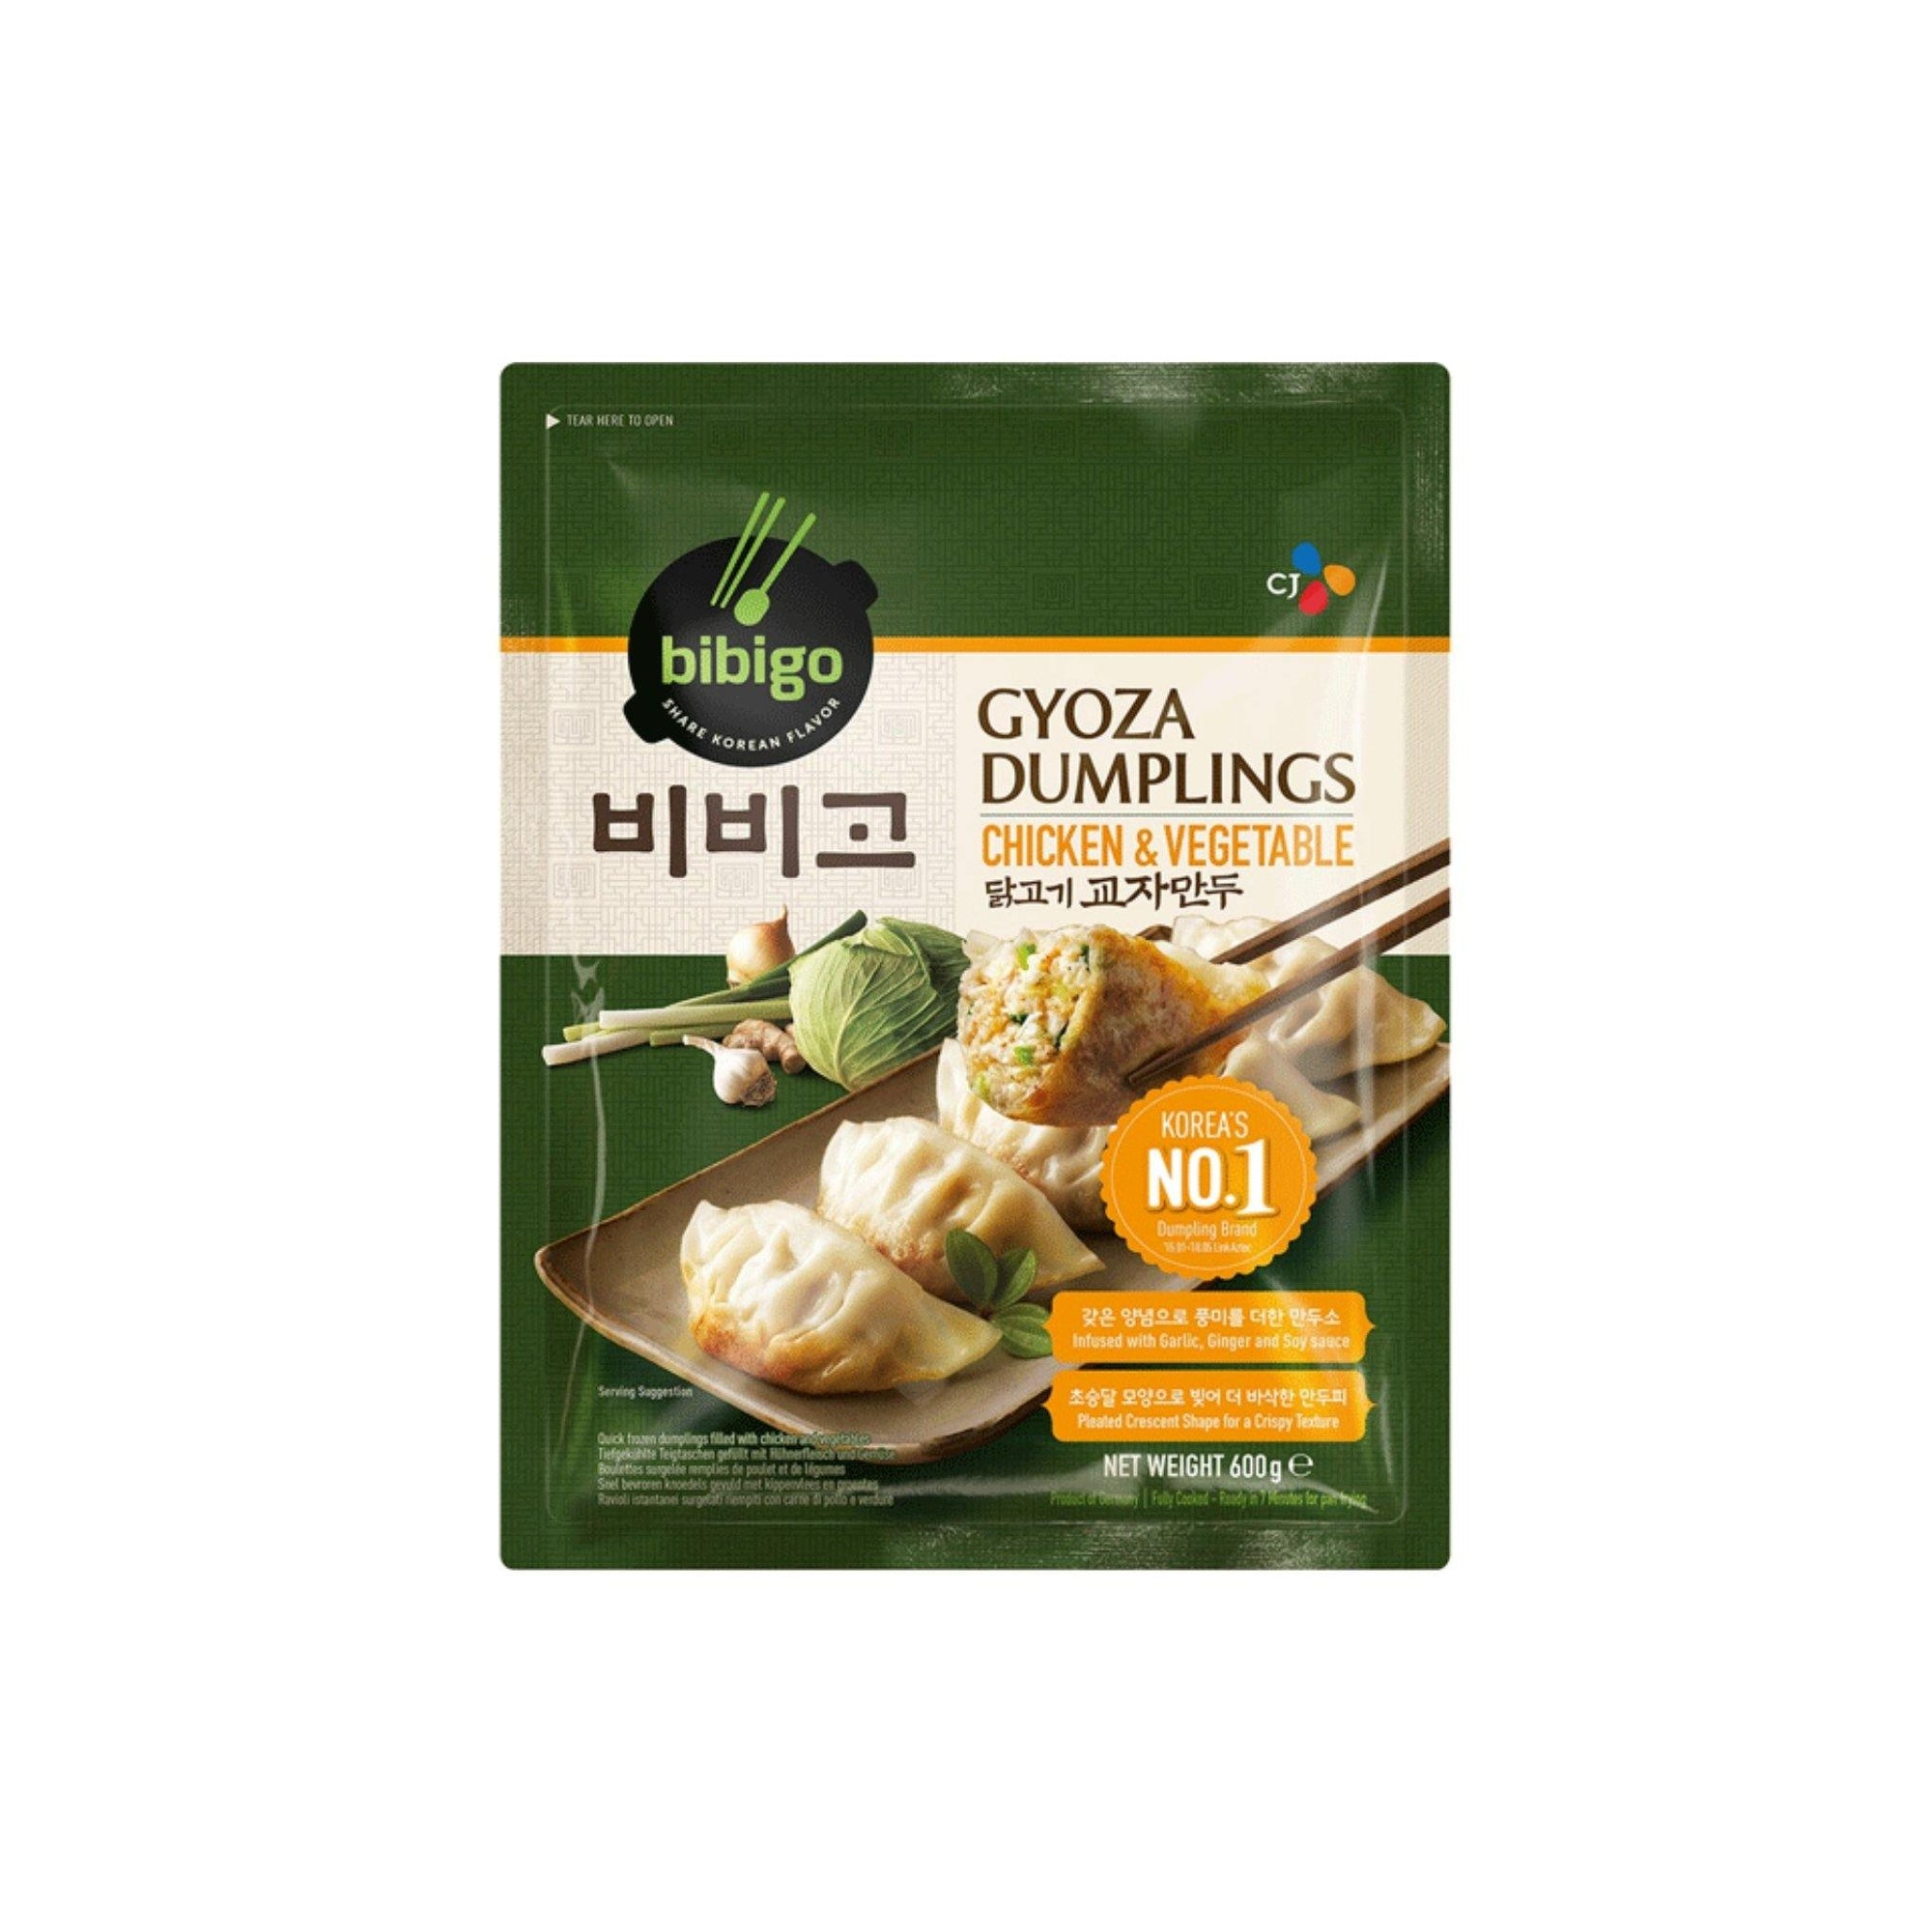 Bibigo Chicken and Veg Gyoza Dumpling 600G - Asian Harvest